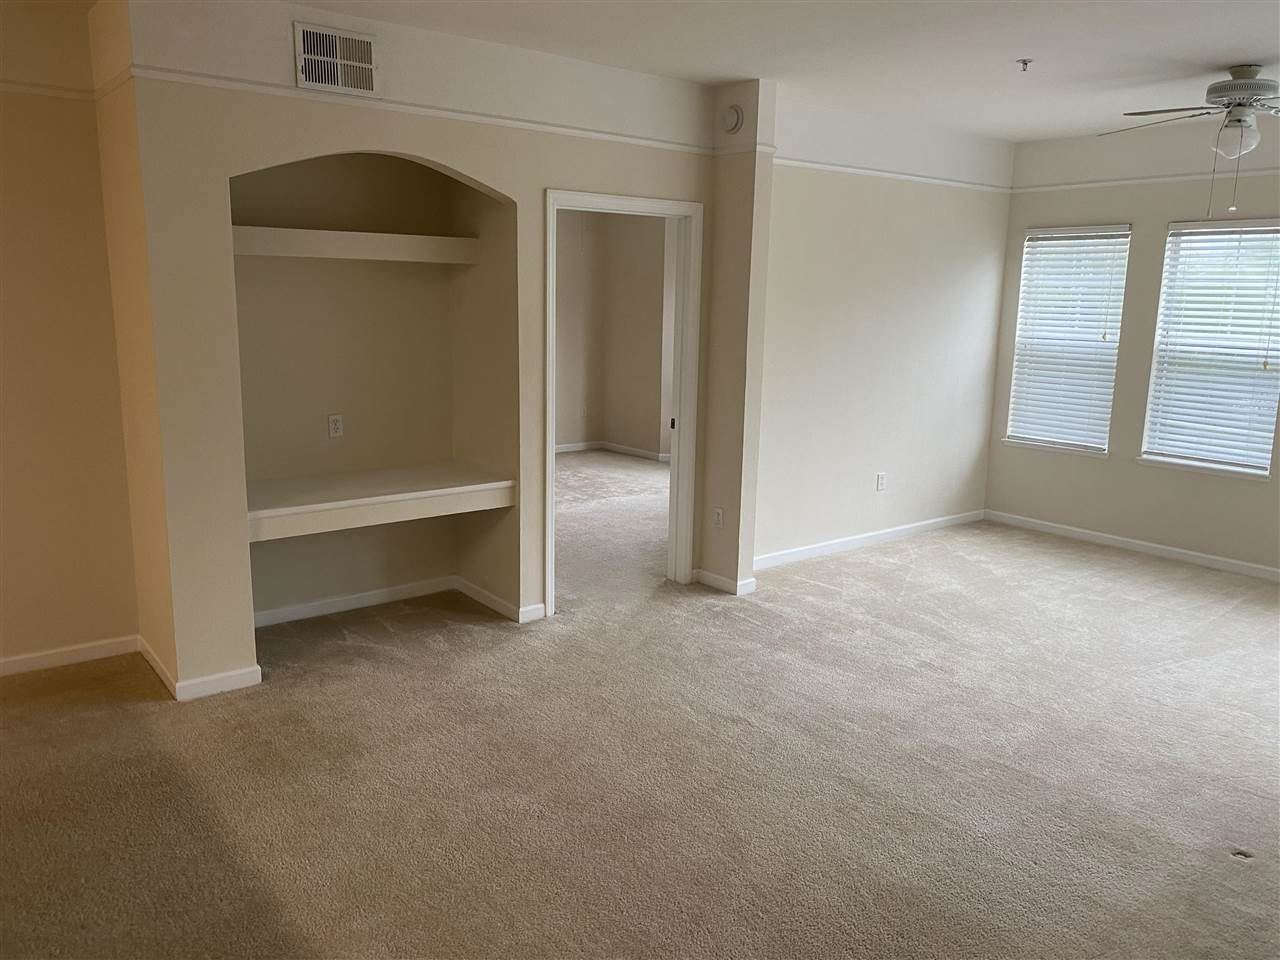 Photo of 2801 Chancellorsville Drive #325, TALLAHASSEE, FL 32312 (MLS # 332319)